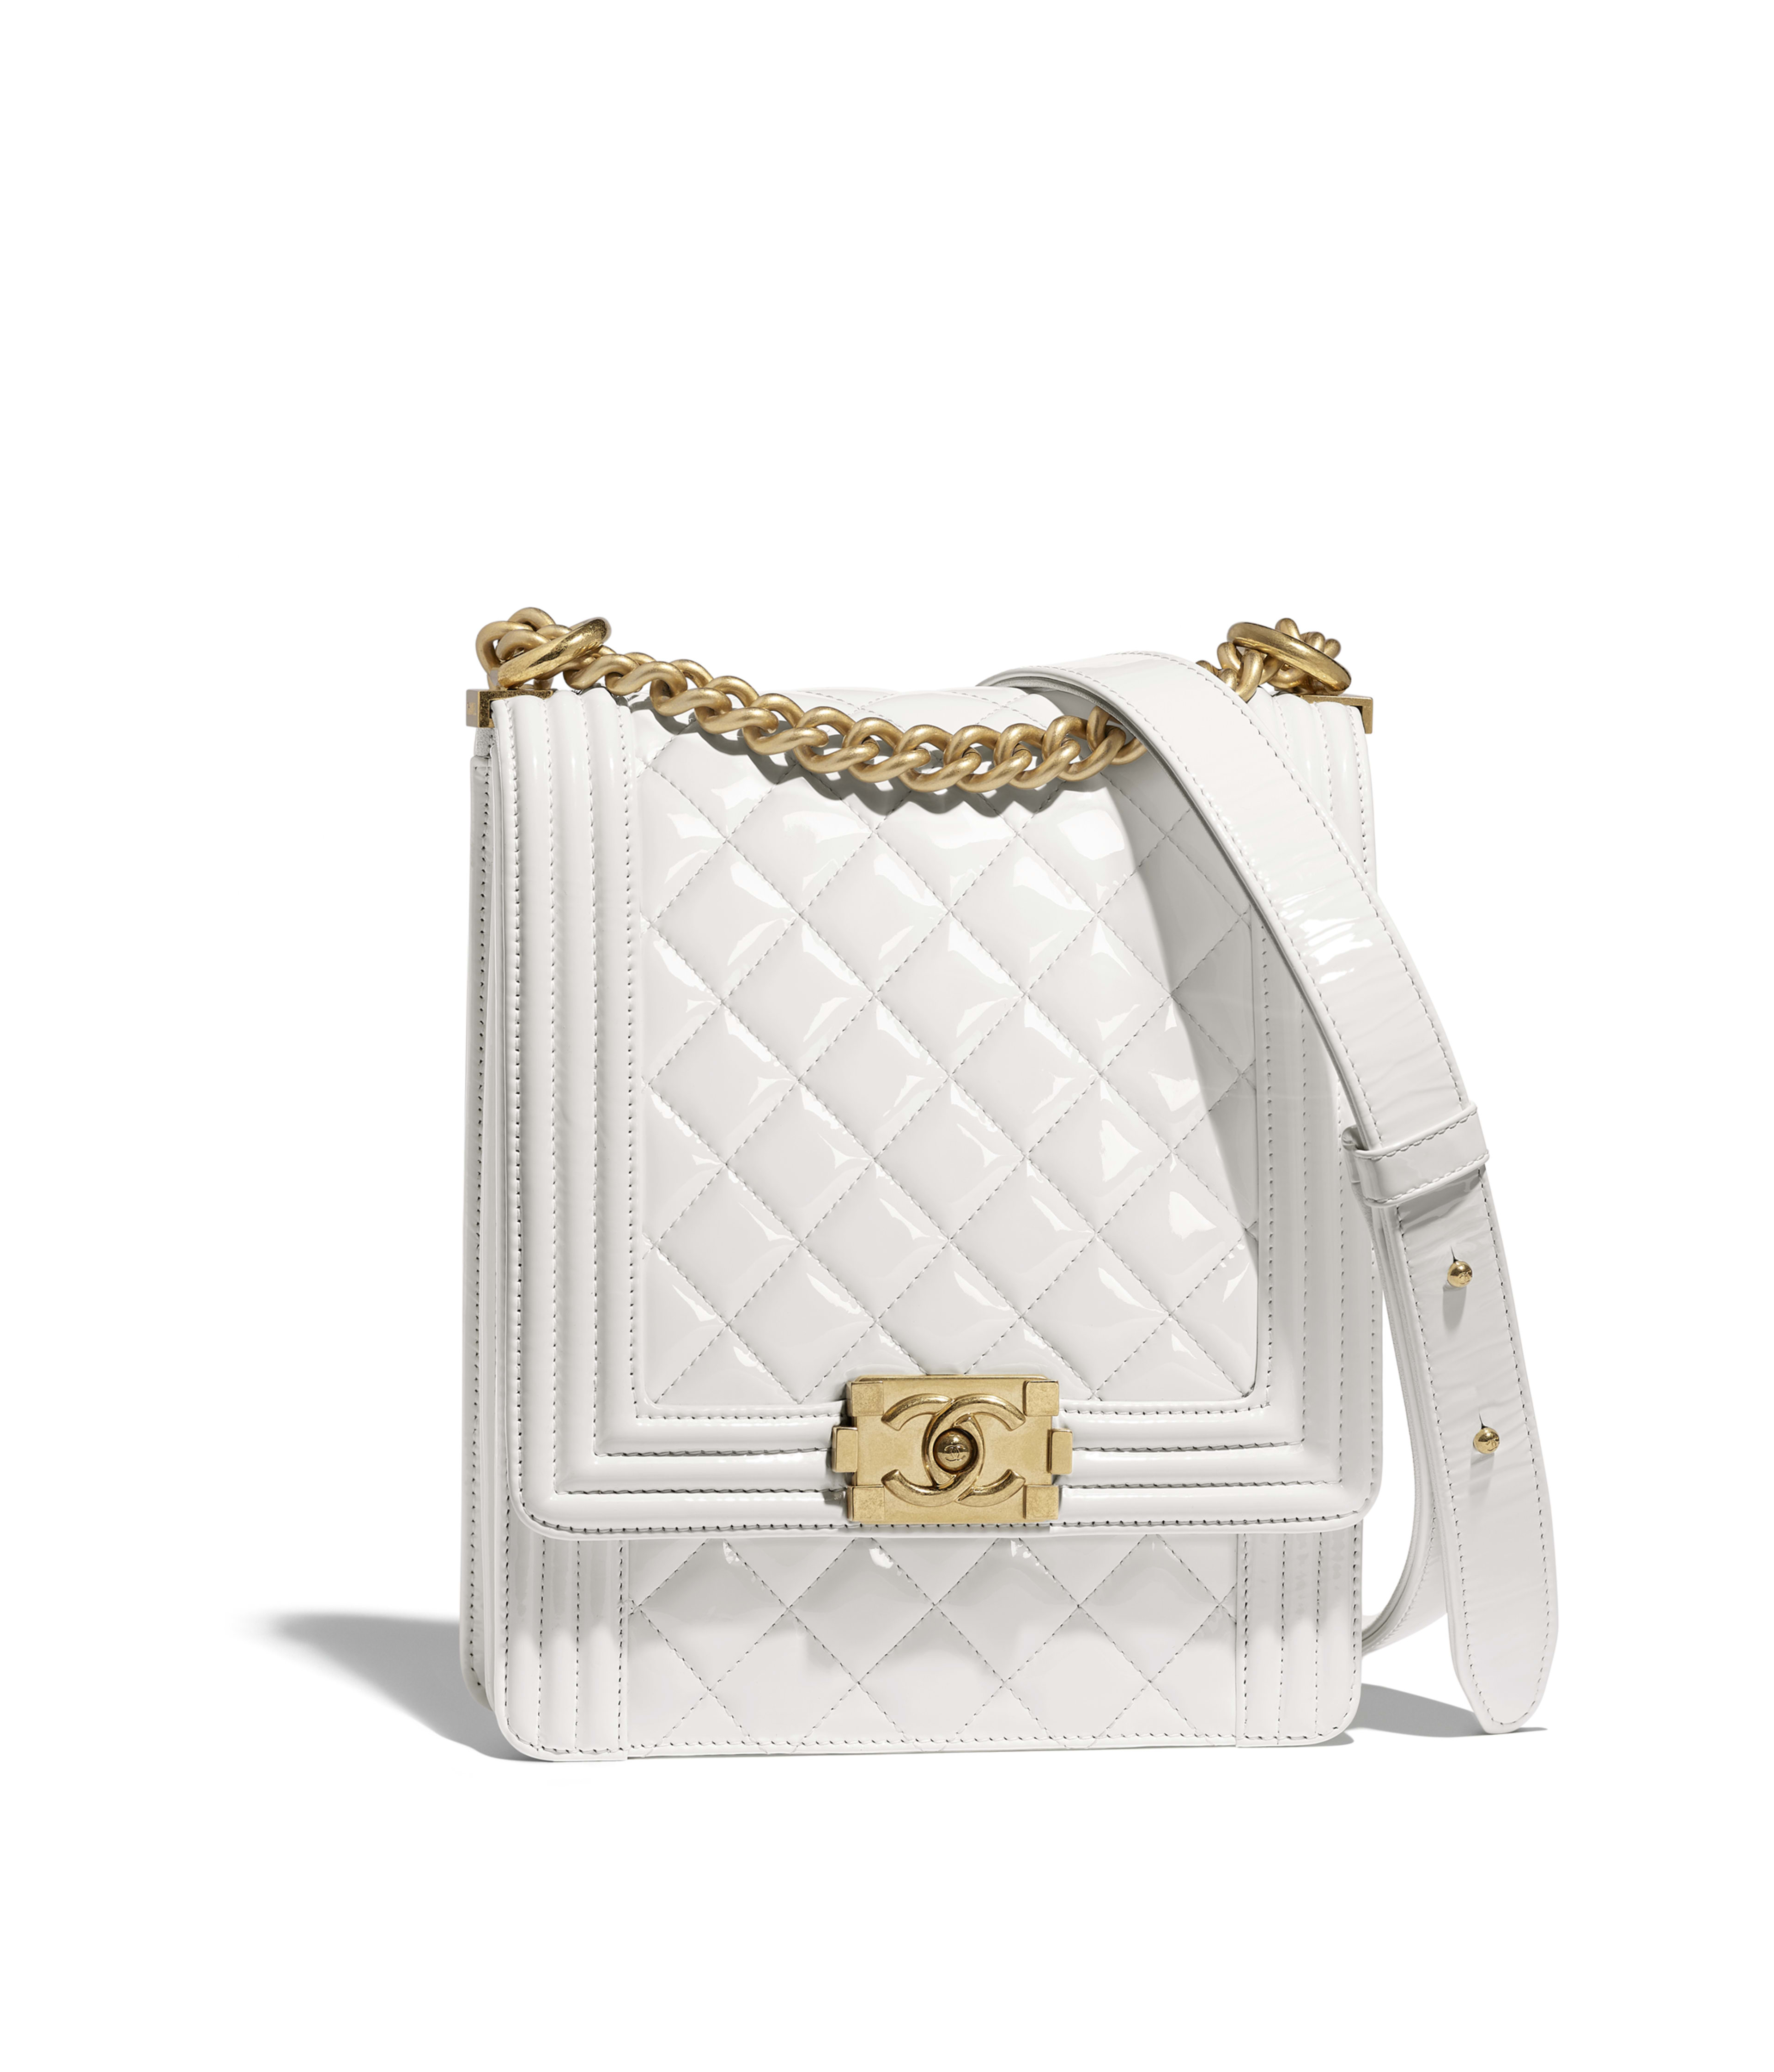 fd3b9b81751c BOY CHANEL Handbag Patent Calfskin & Gold-Tone Metal, White Ref.  AS0130Y8418110601